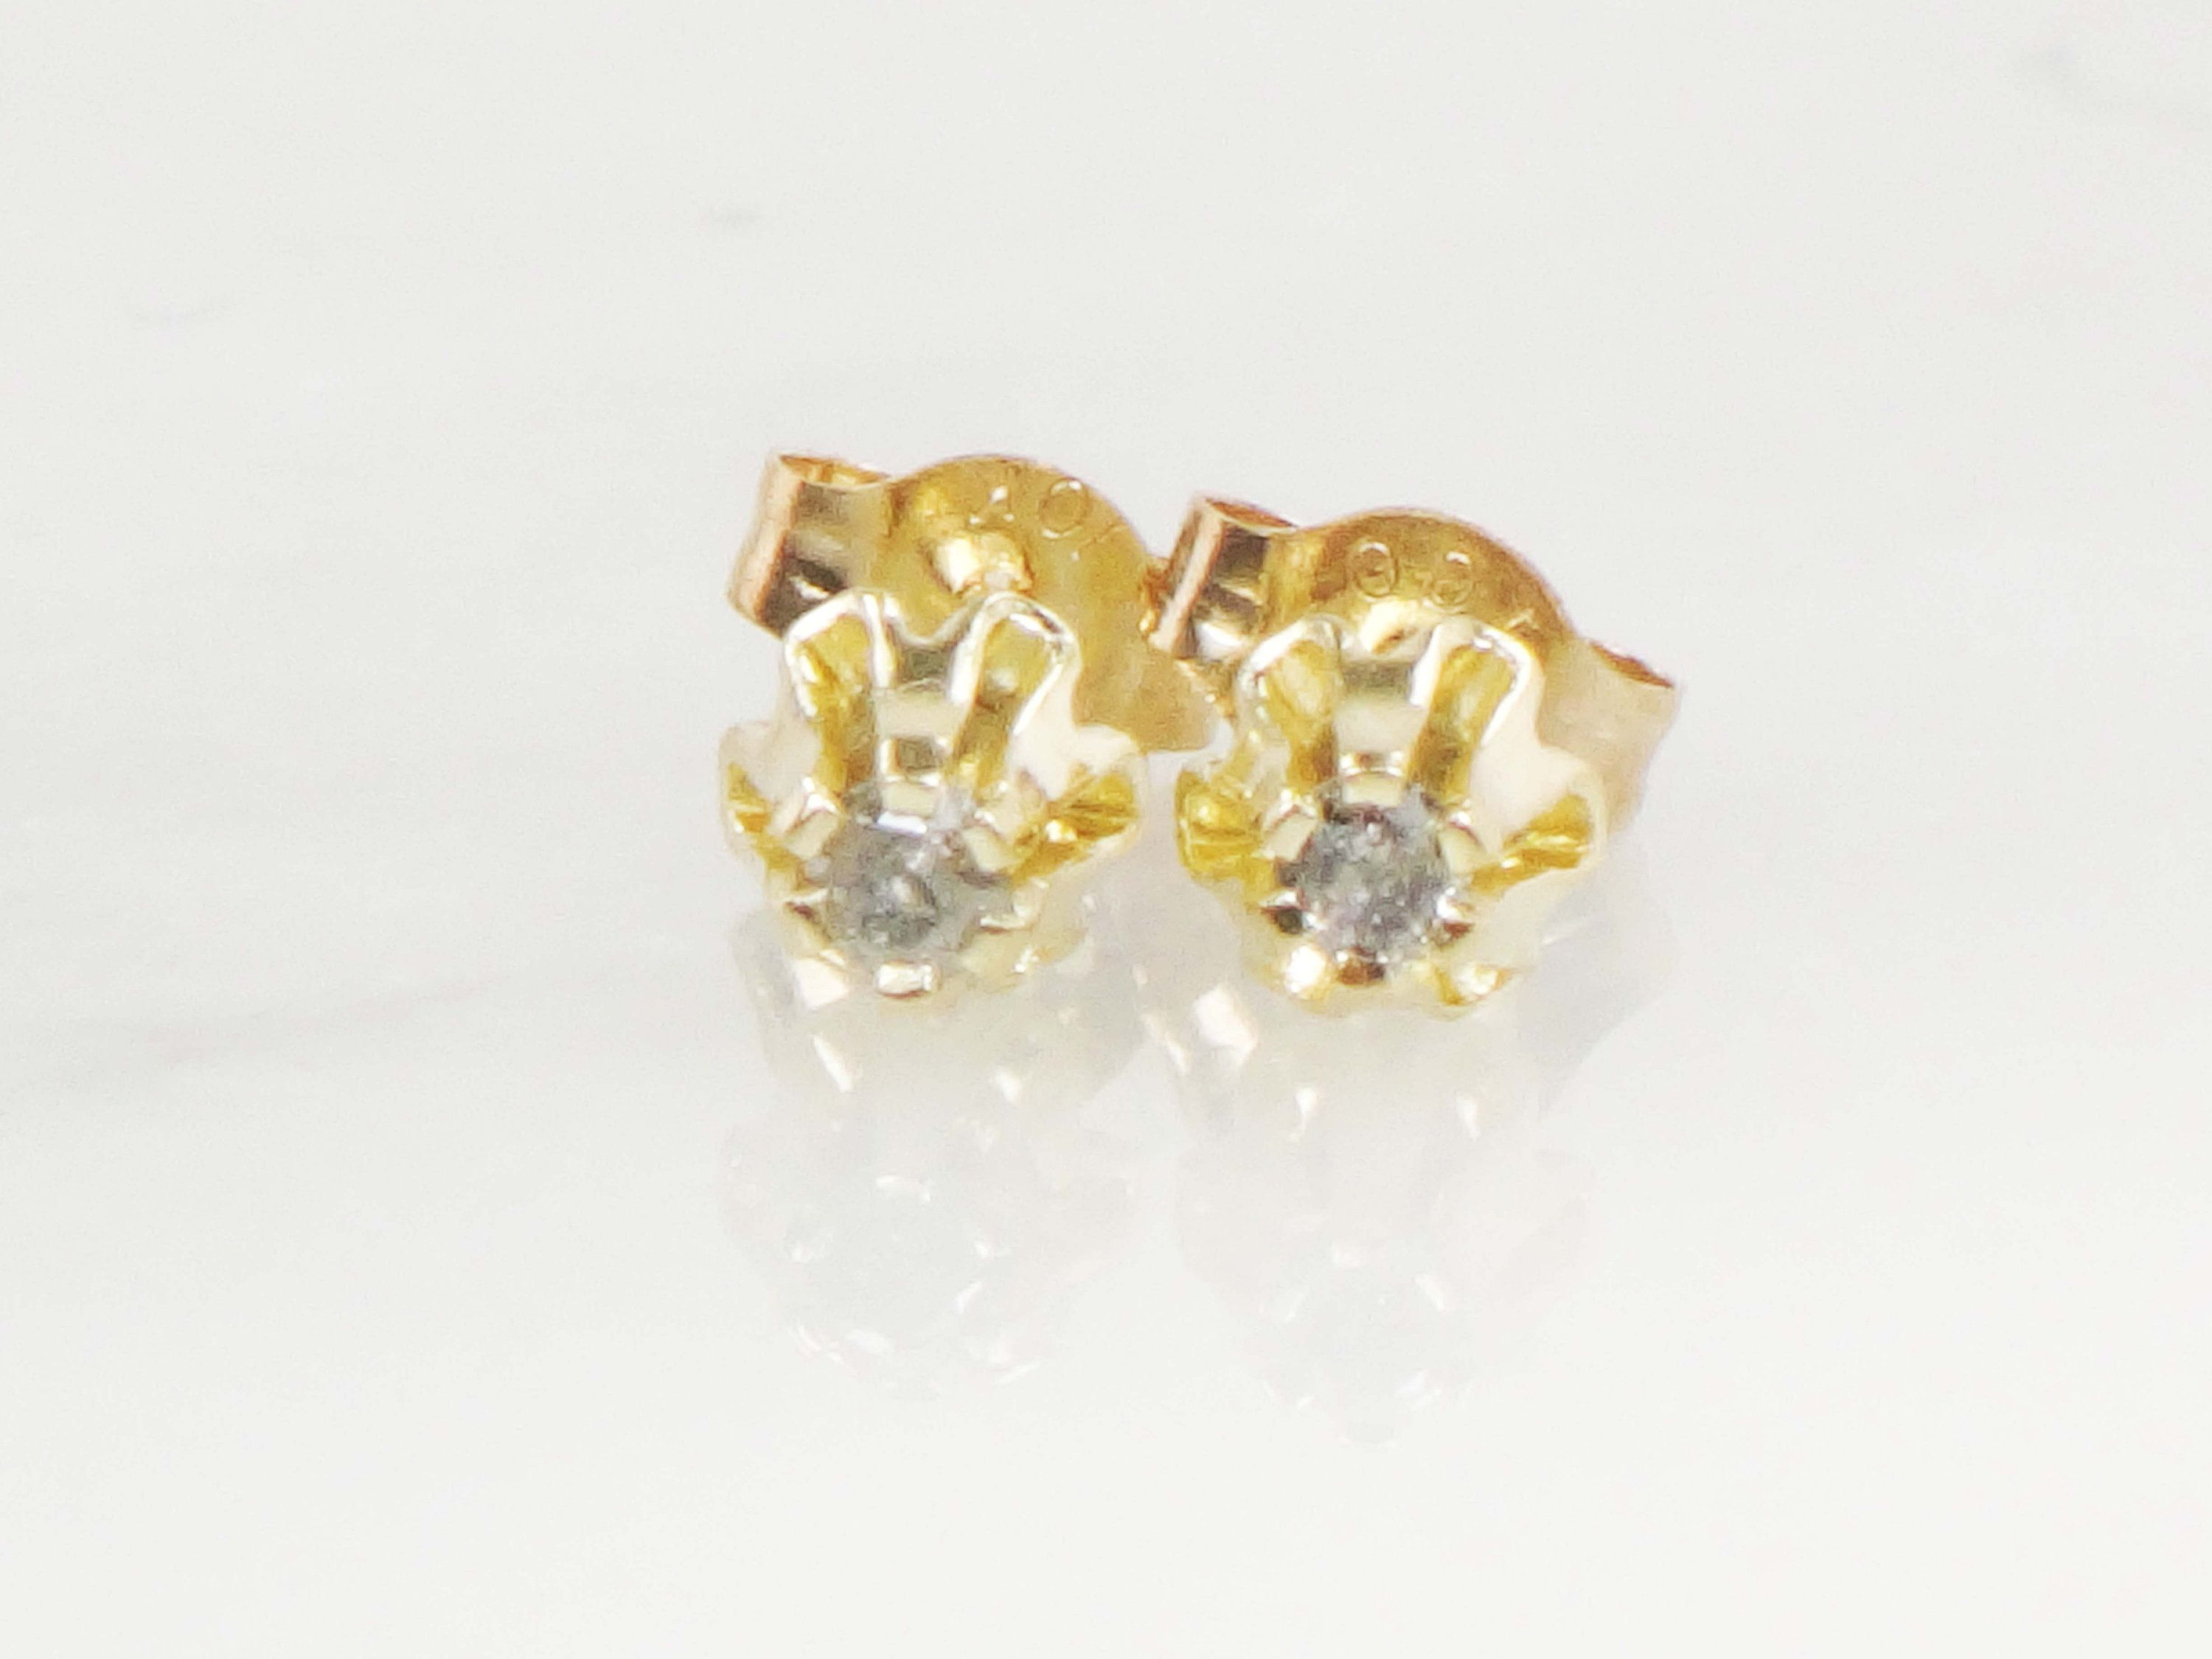 Vintage Diamond Stud Earrings Post Back Tiny Diamond Earrings Etsy In 2020 Small Earrings Studs Tiny Diamond Earrings Stud Earrings